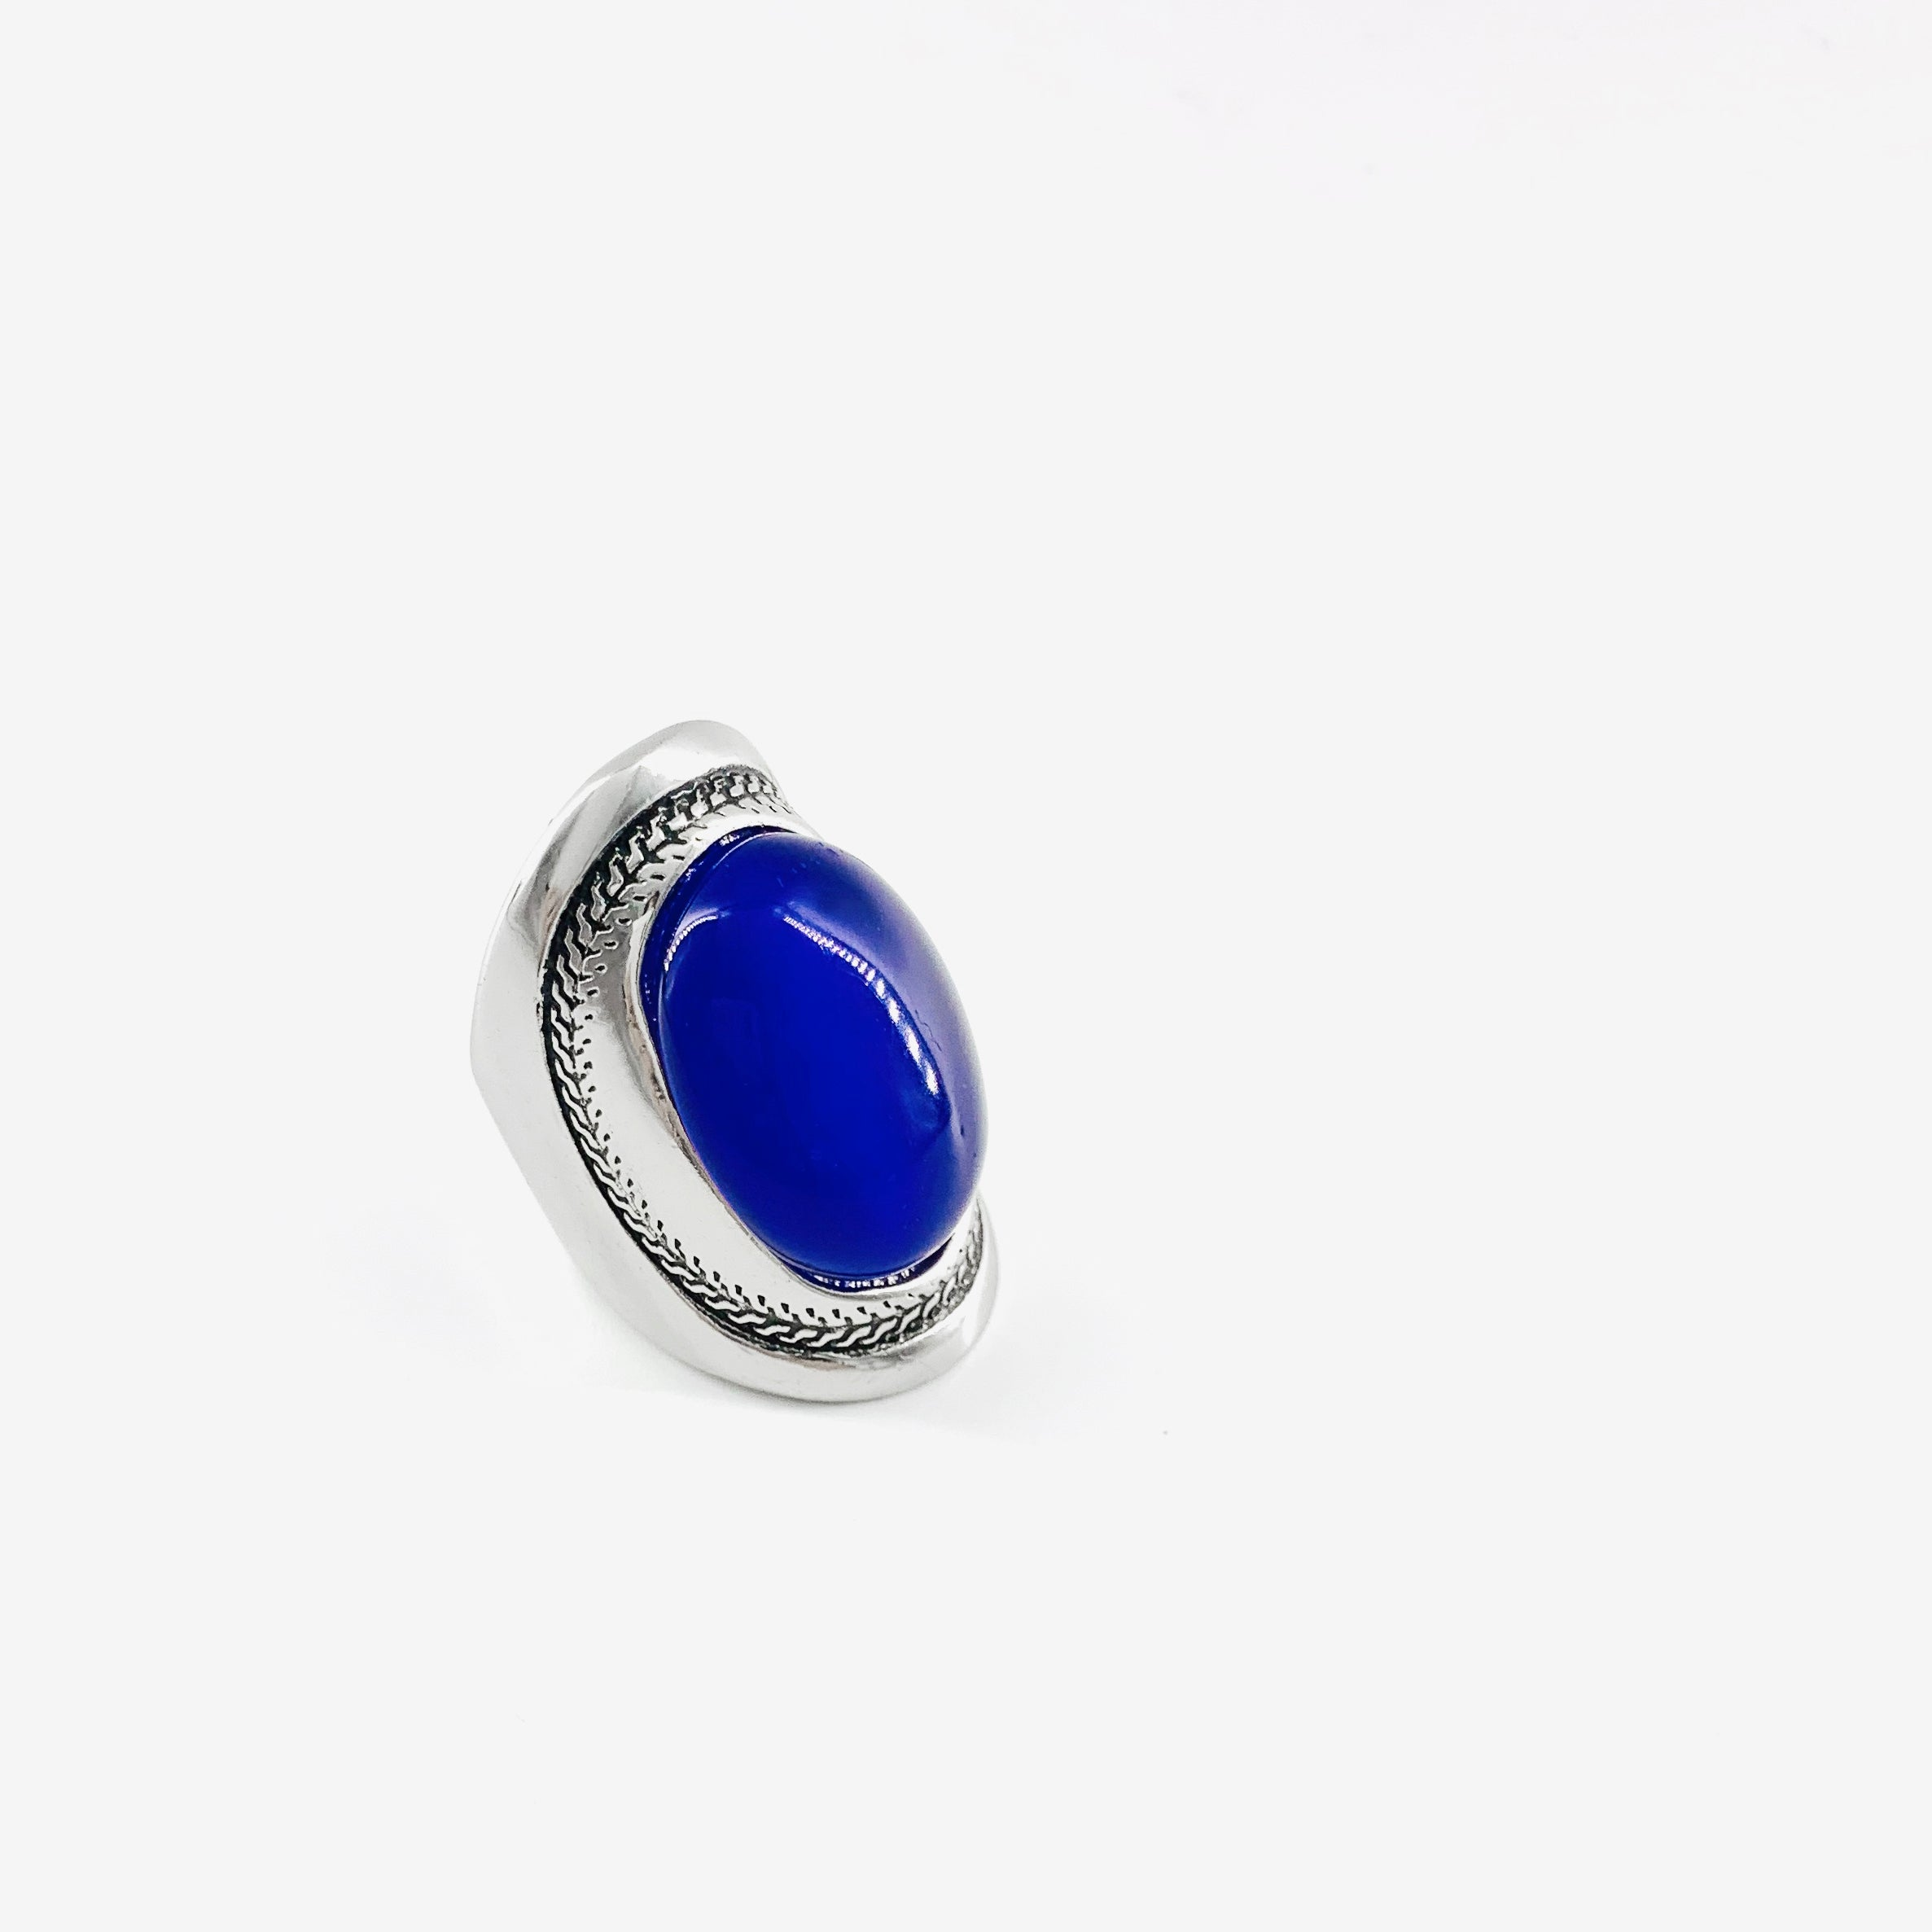 Art deco inspired silver ring with blue stone